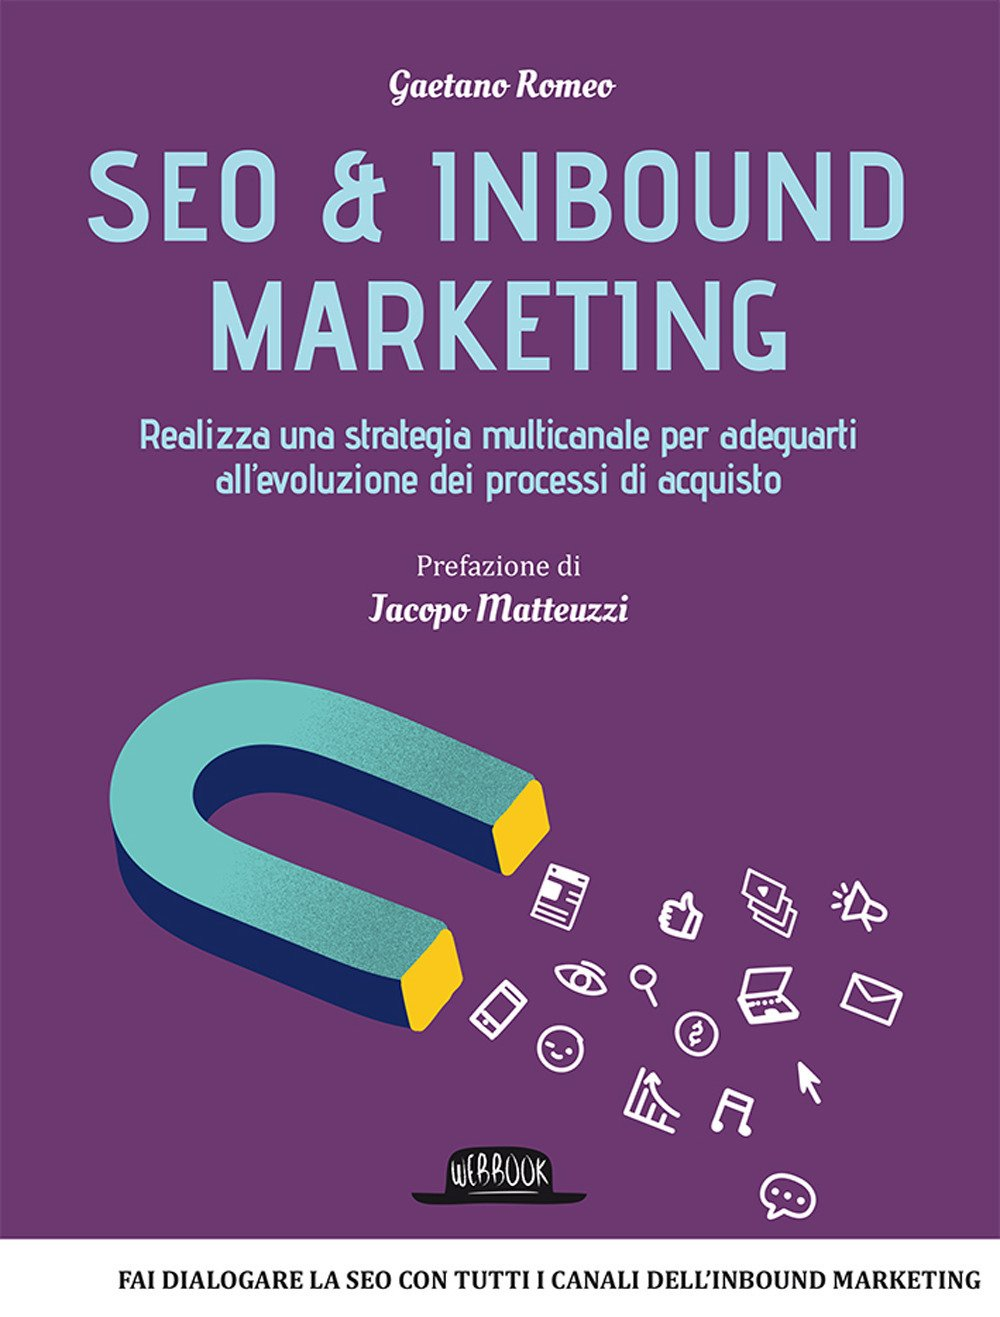 SEO e Inbound Marketing di Gaetano Romeo